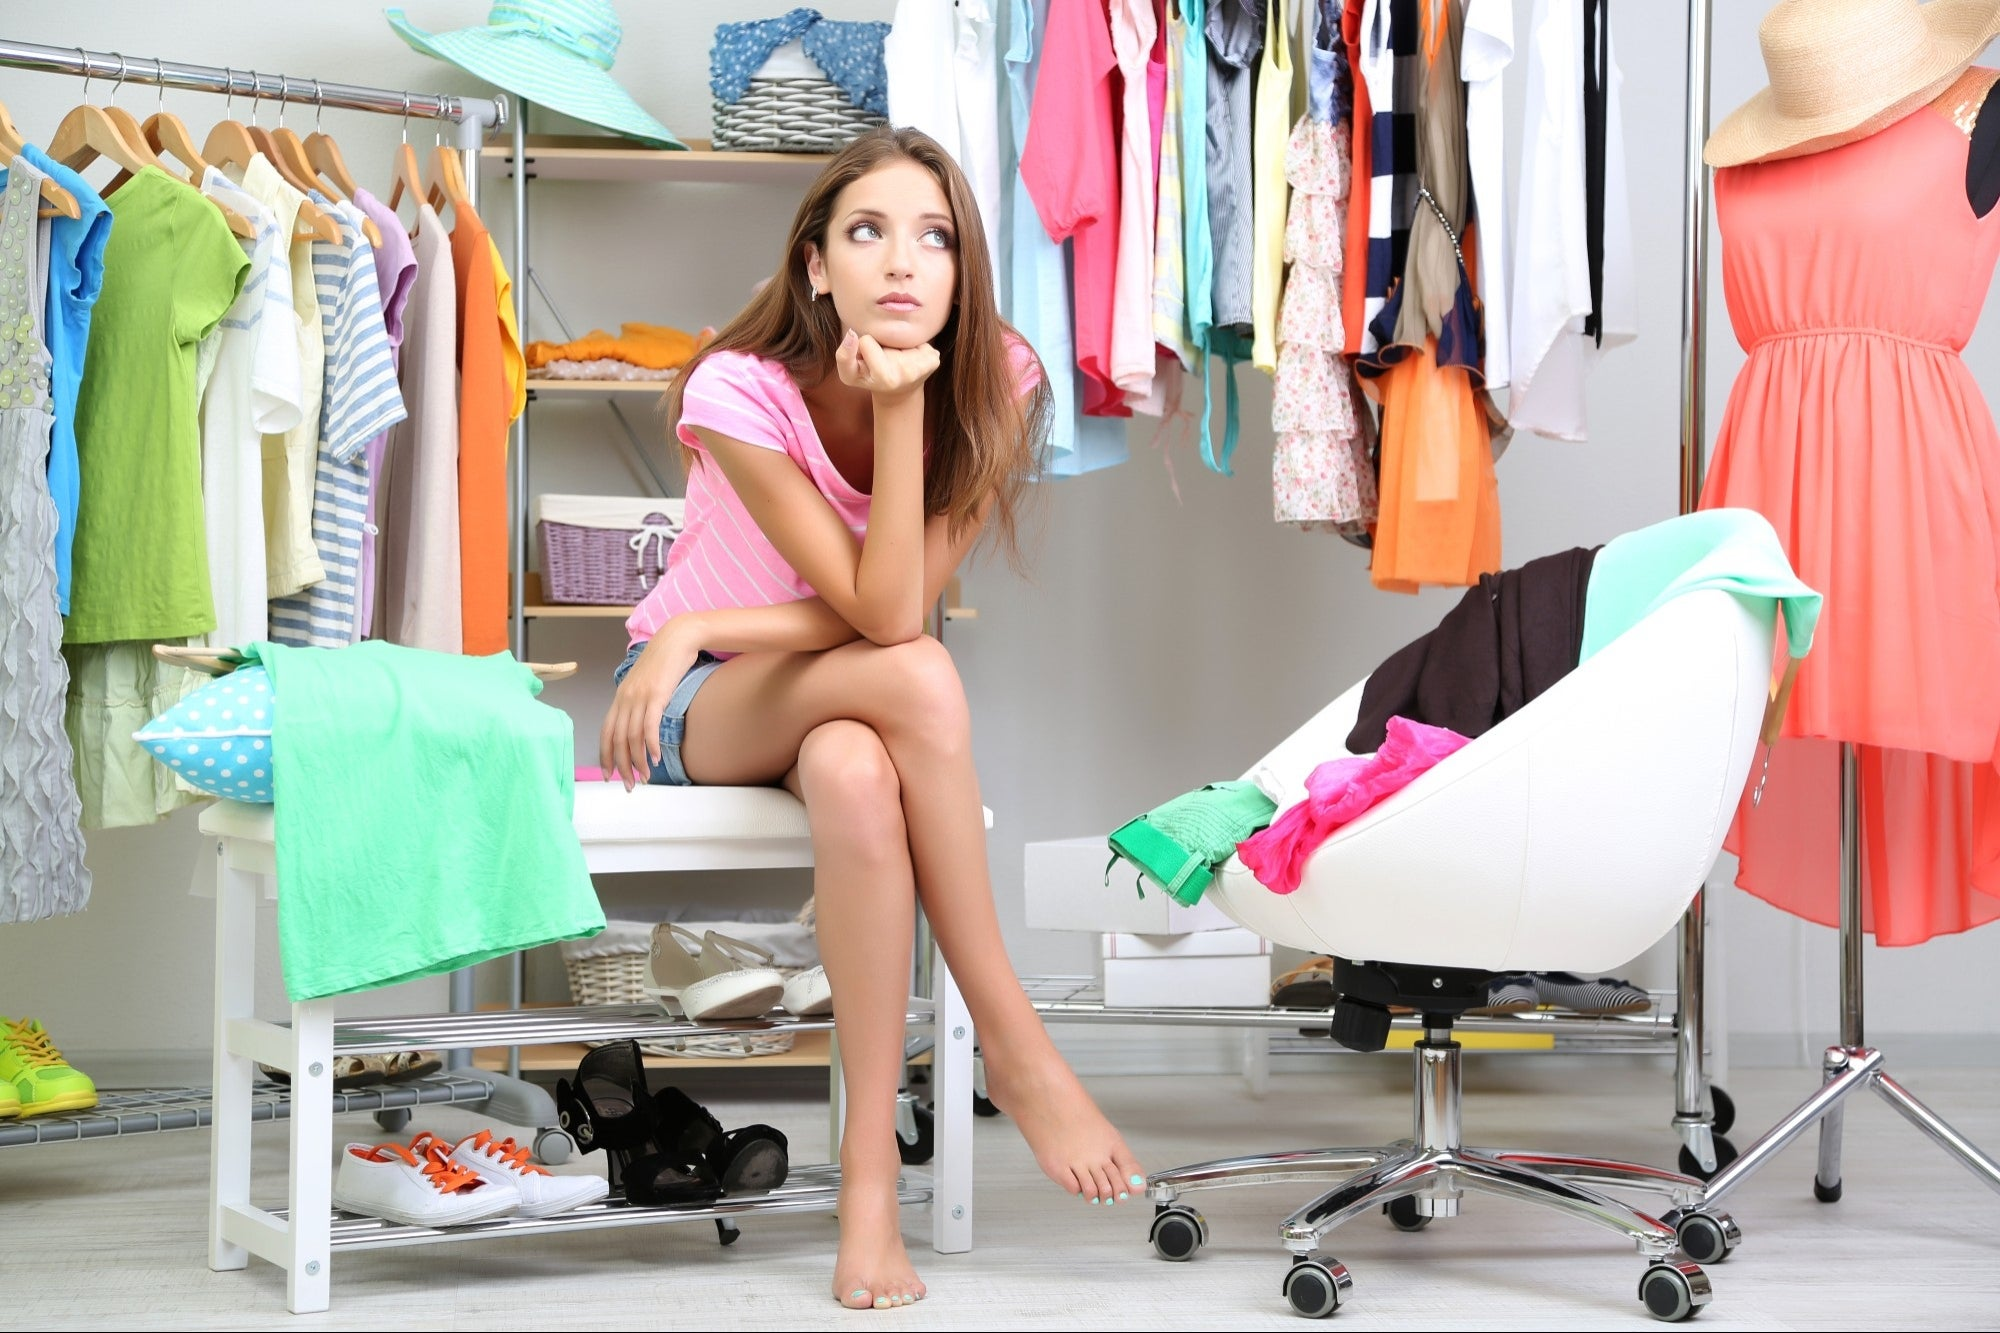 , 5 Tips to Renovate Your Closet Without Spending So Much Money, Saubio Making Wealth